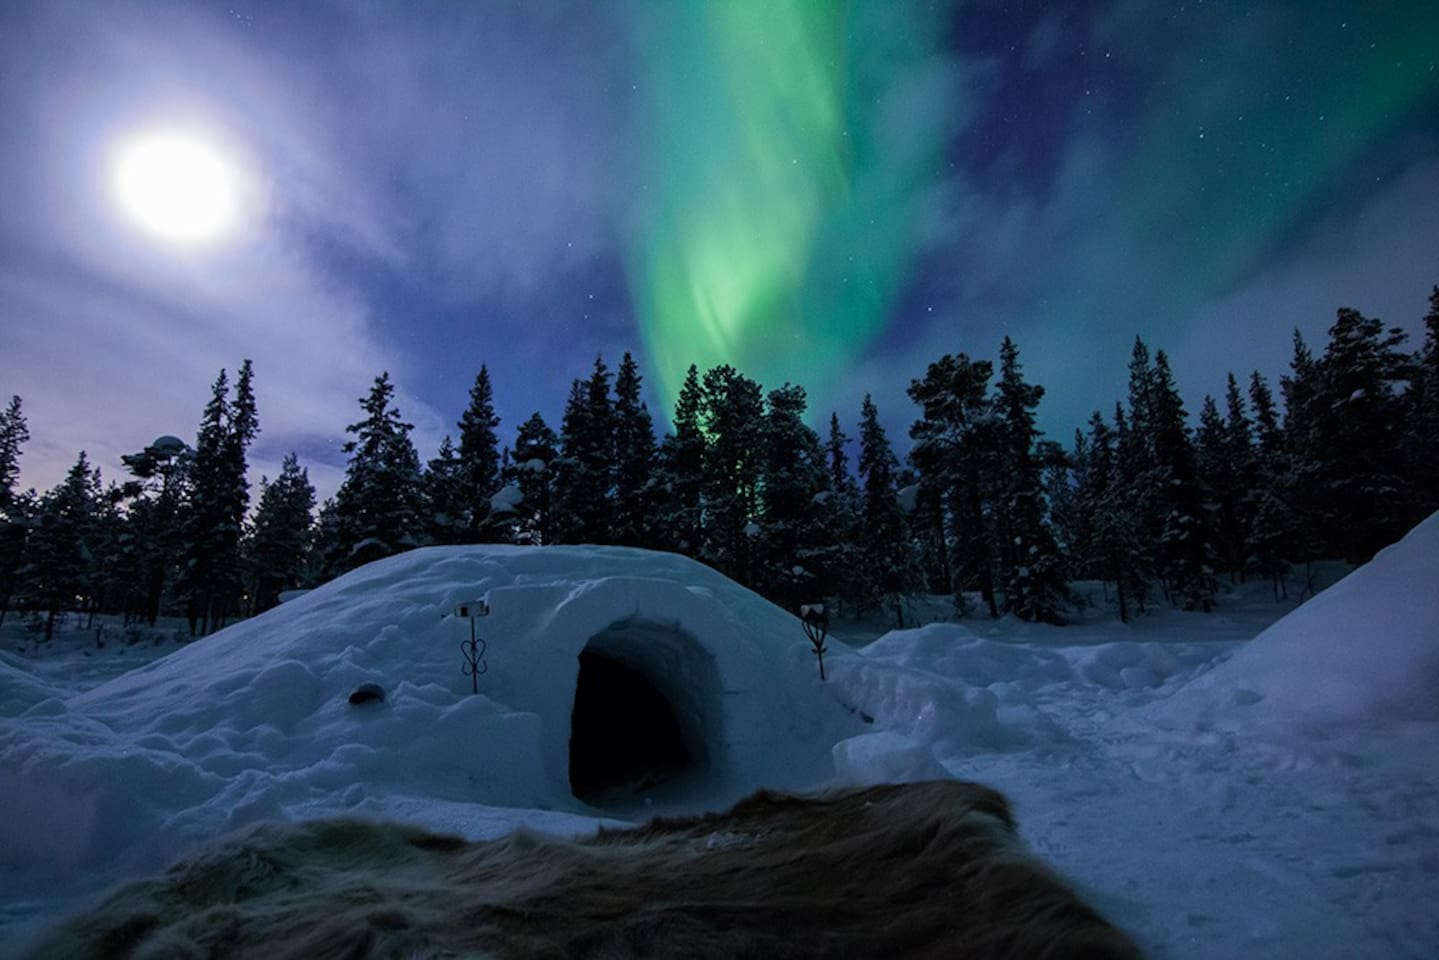 Watching the northern lights from your igloo in winter